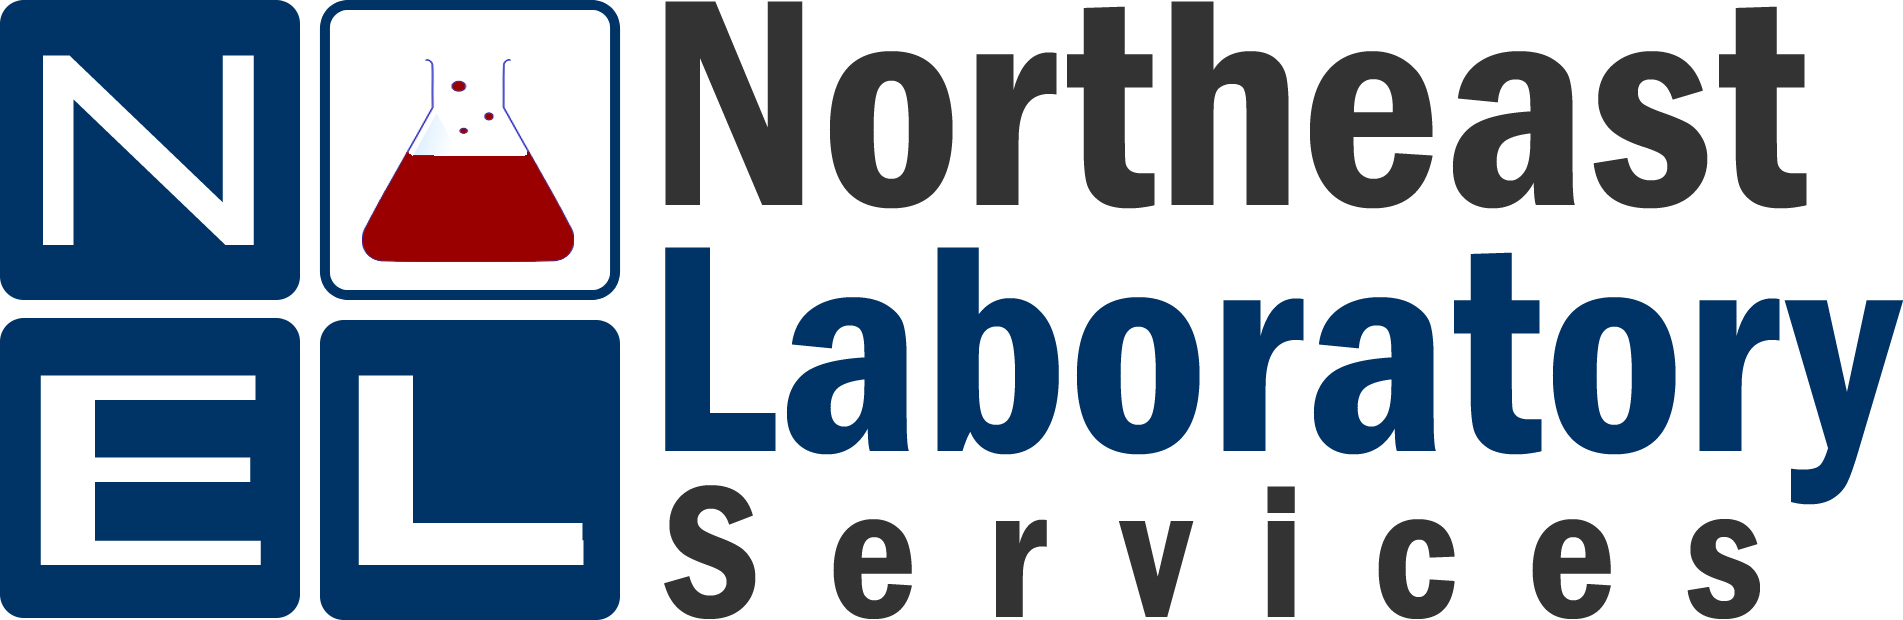 Northeast Laboratory Services, Inc. - Northeast Laboratory Services is a full-service, accredited laboratory providing a wide range of env